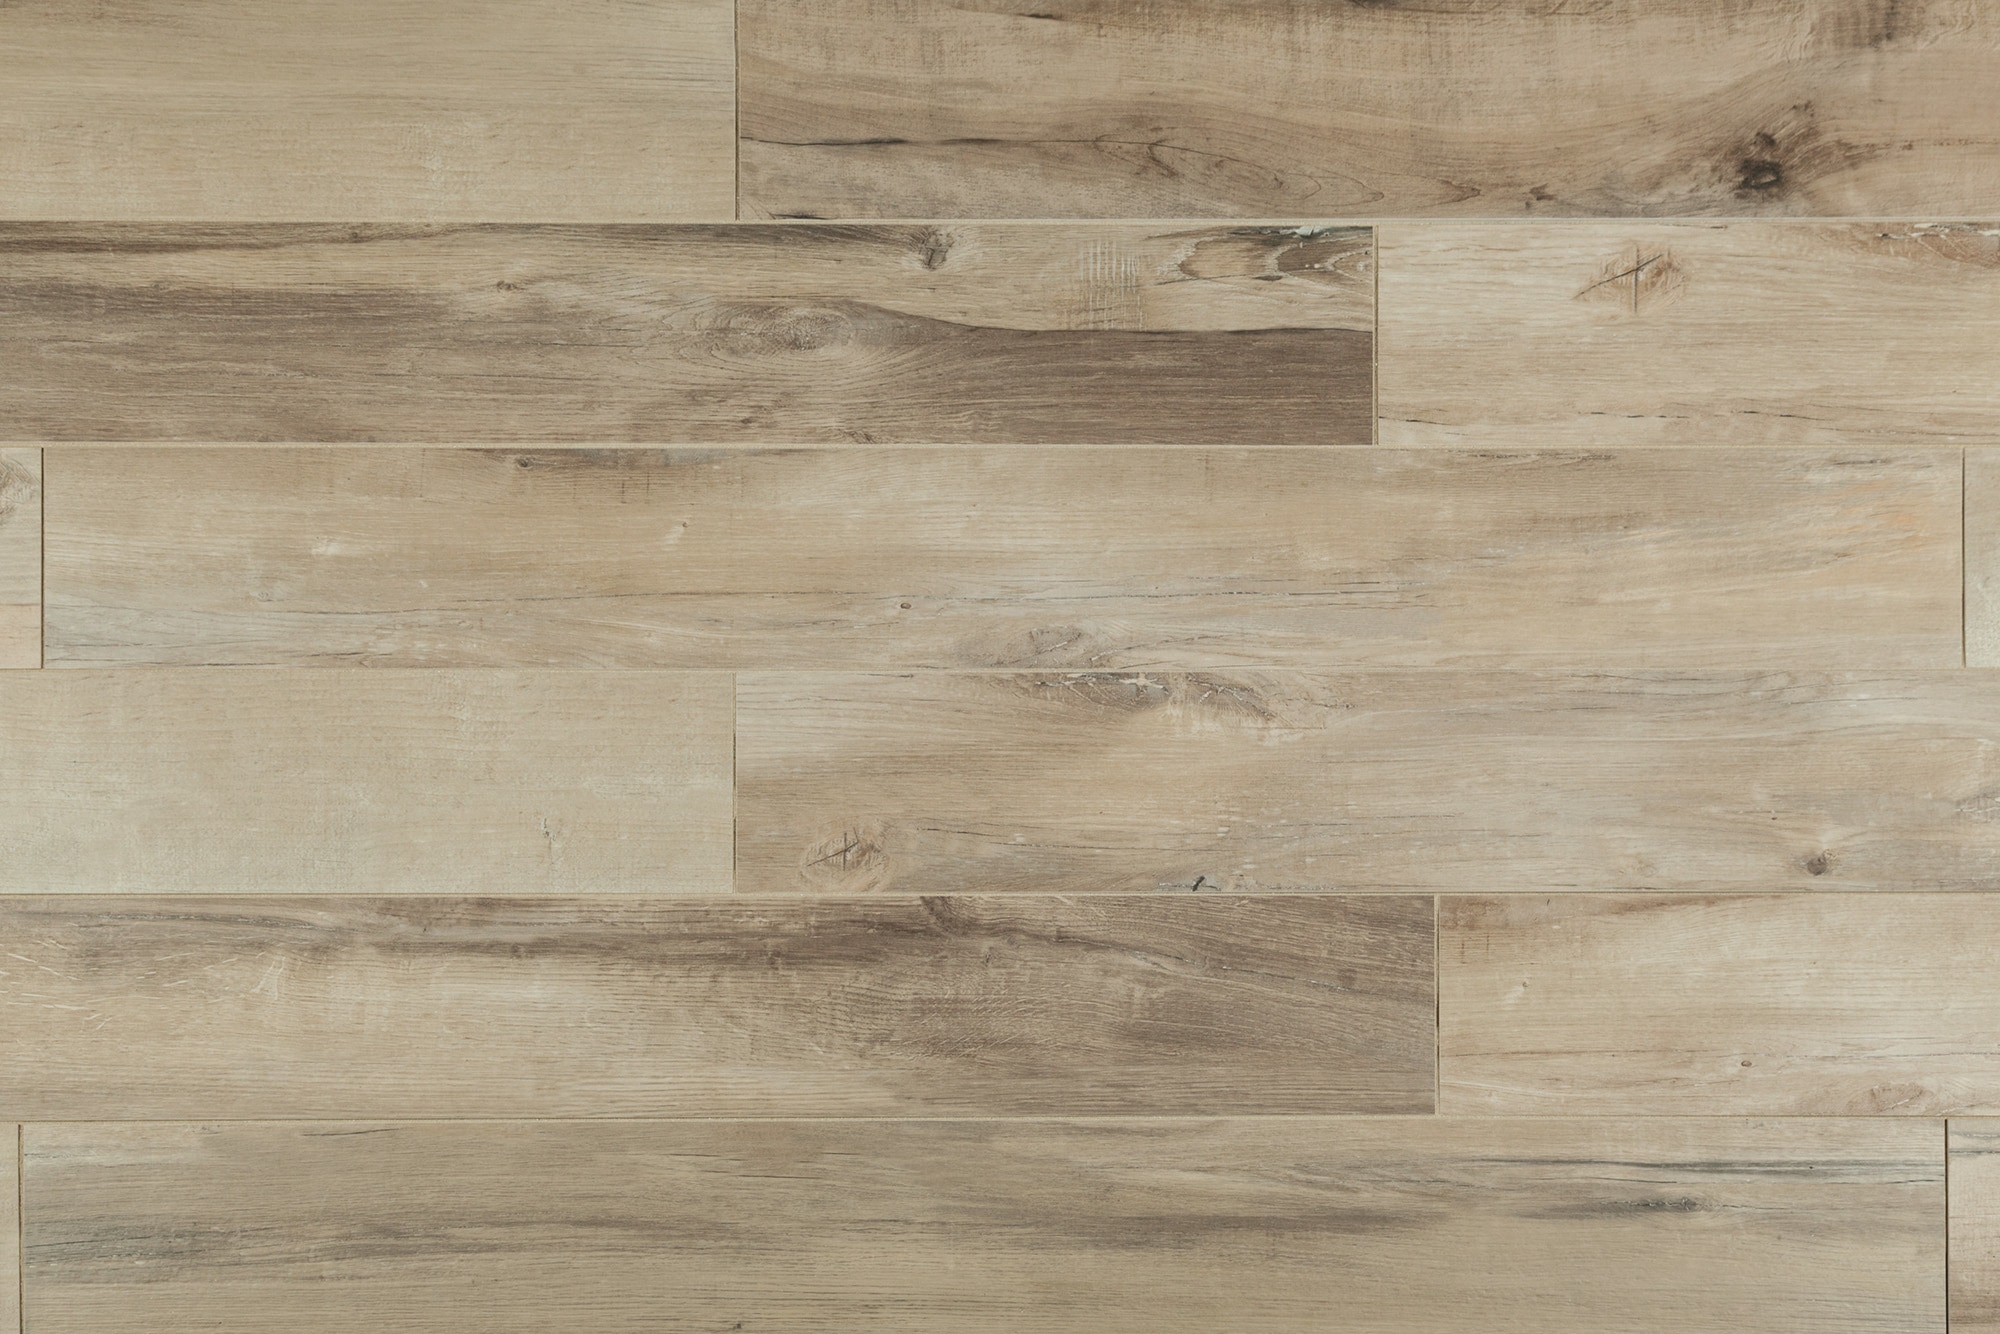 Free samples torino italian porcelain tile rustic sequoia free samples torino italian porcelain tile rustic sequoia collection sierra earth 8x48 doublecrazyfo Choice Image